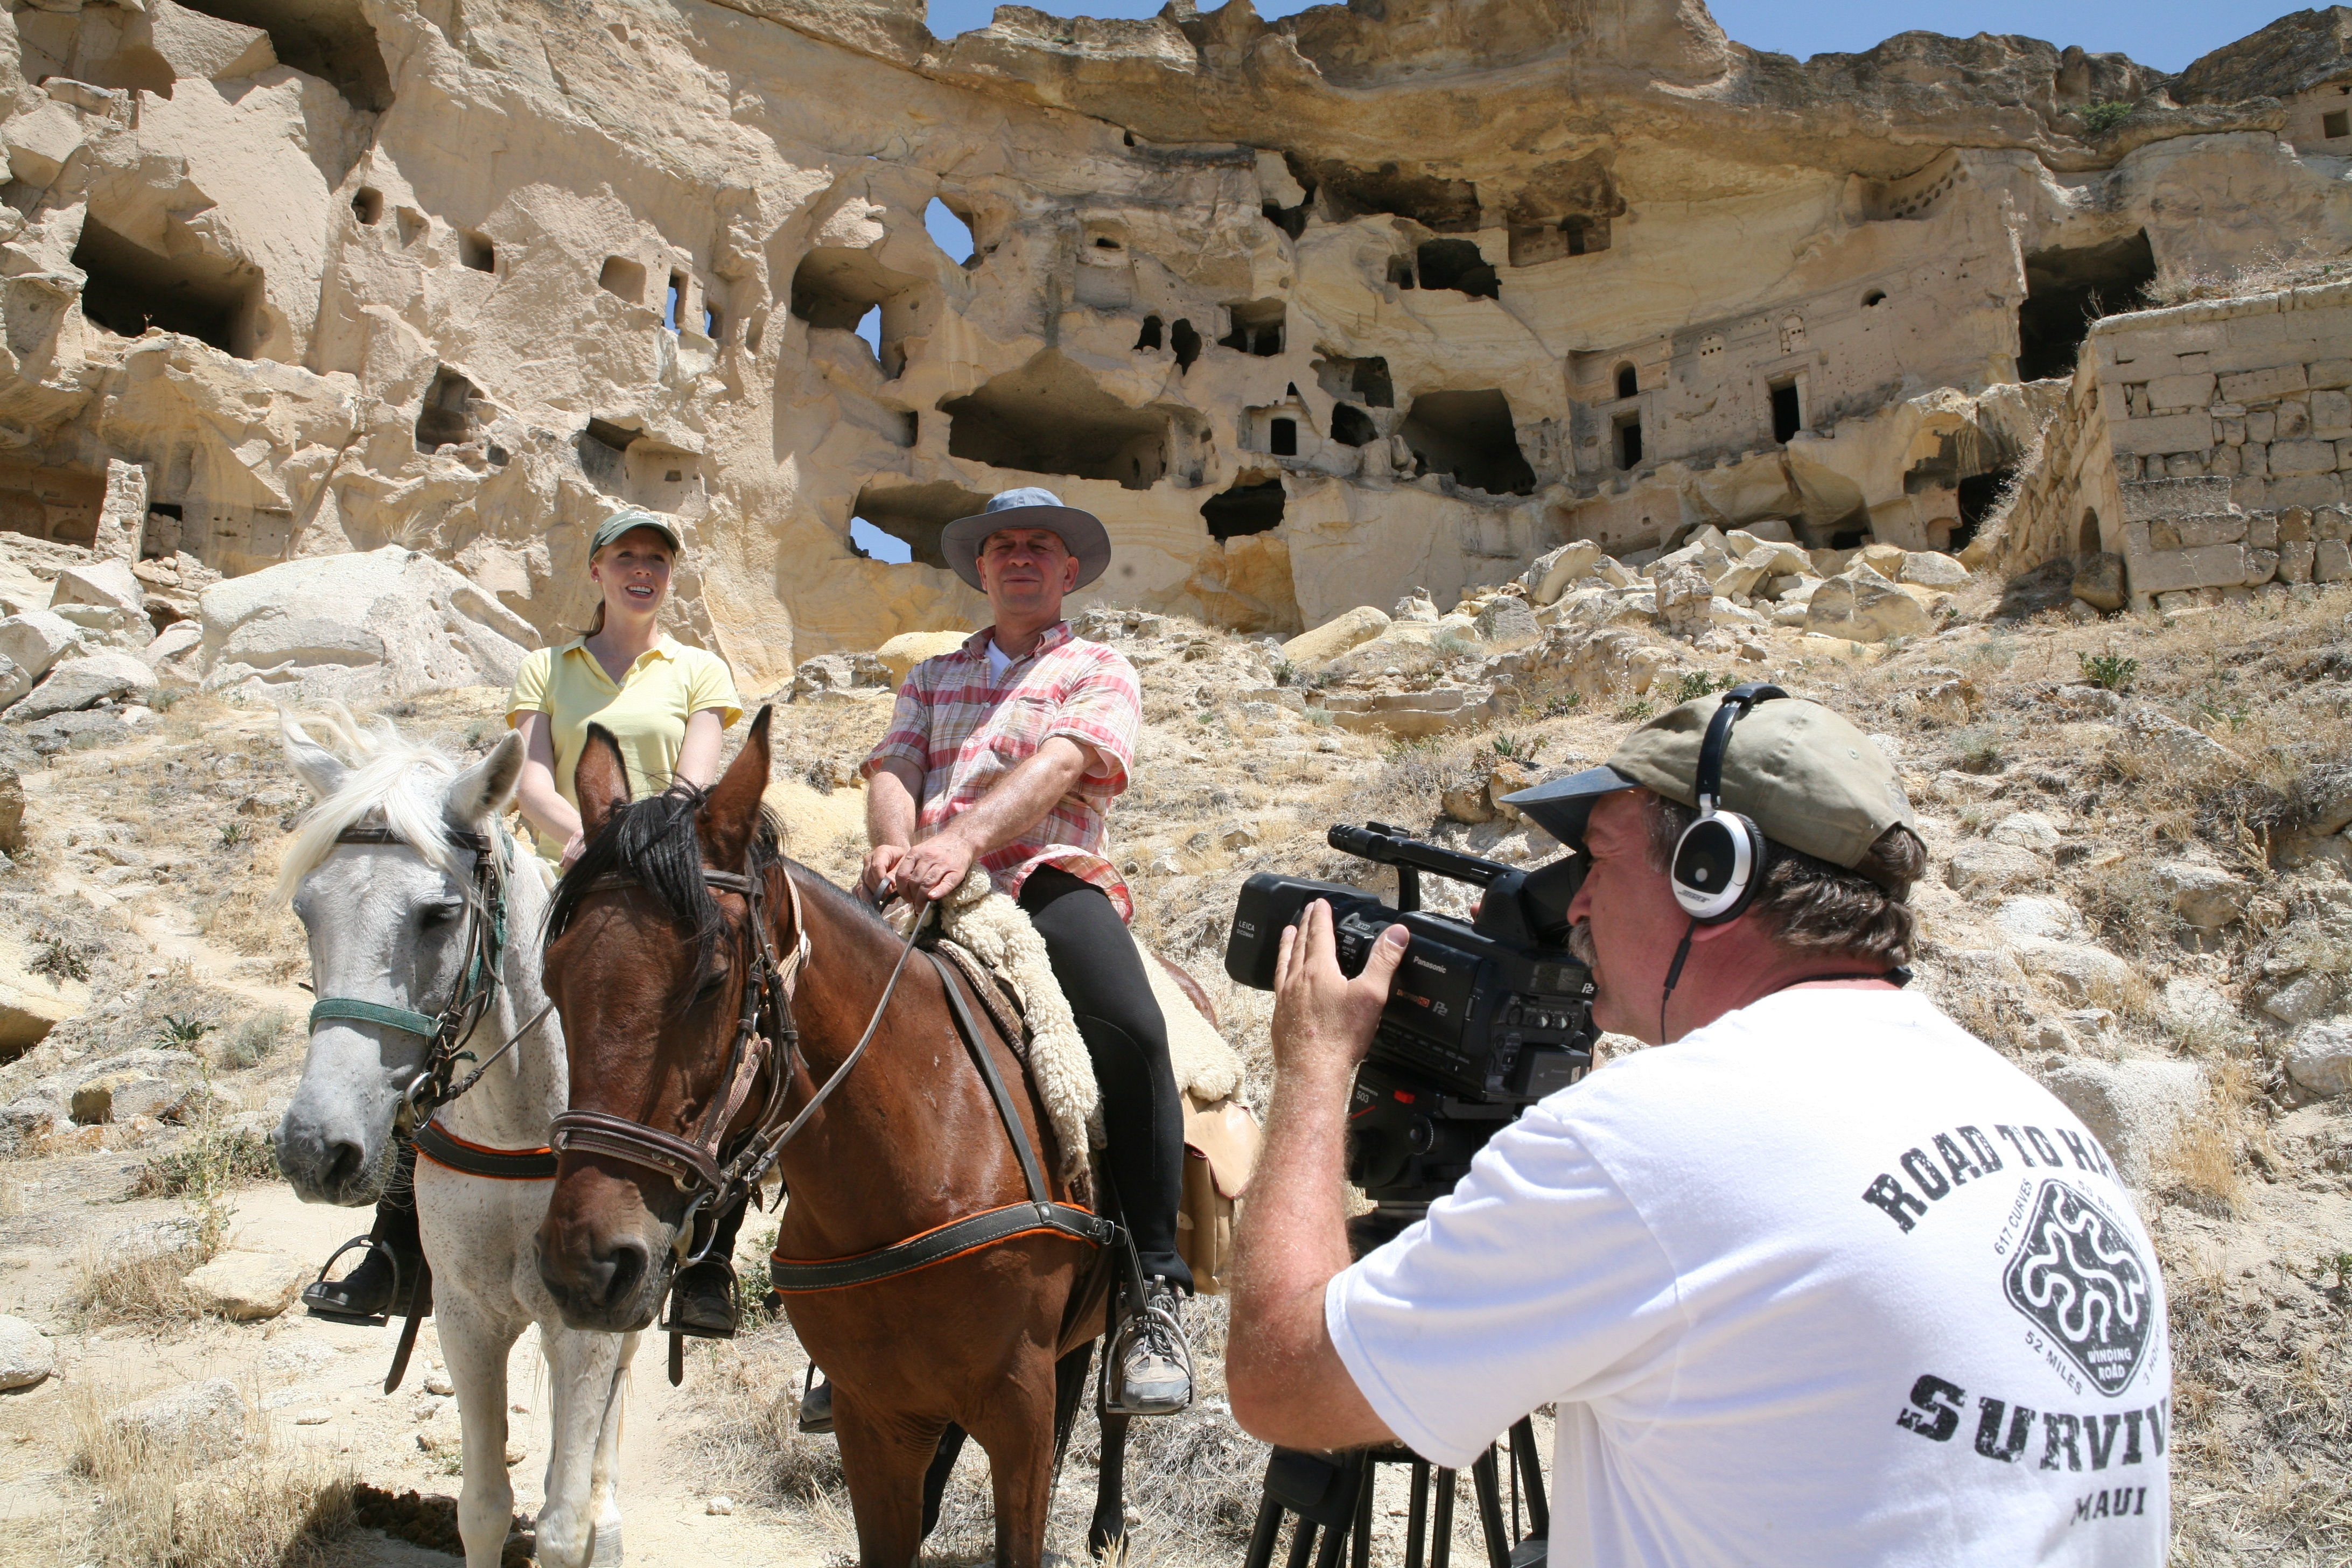 Darley Newman and Ahmet Diler get filmed by Greg Barna in the village of Cavusin in Cappadocia for the Equitrekking Central Turkey. Behind Darley and Ahmet is an old settlement of rock houses, where people lived until the 1950's.